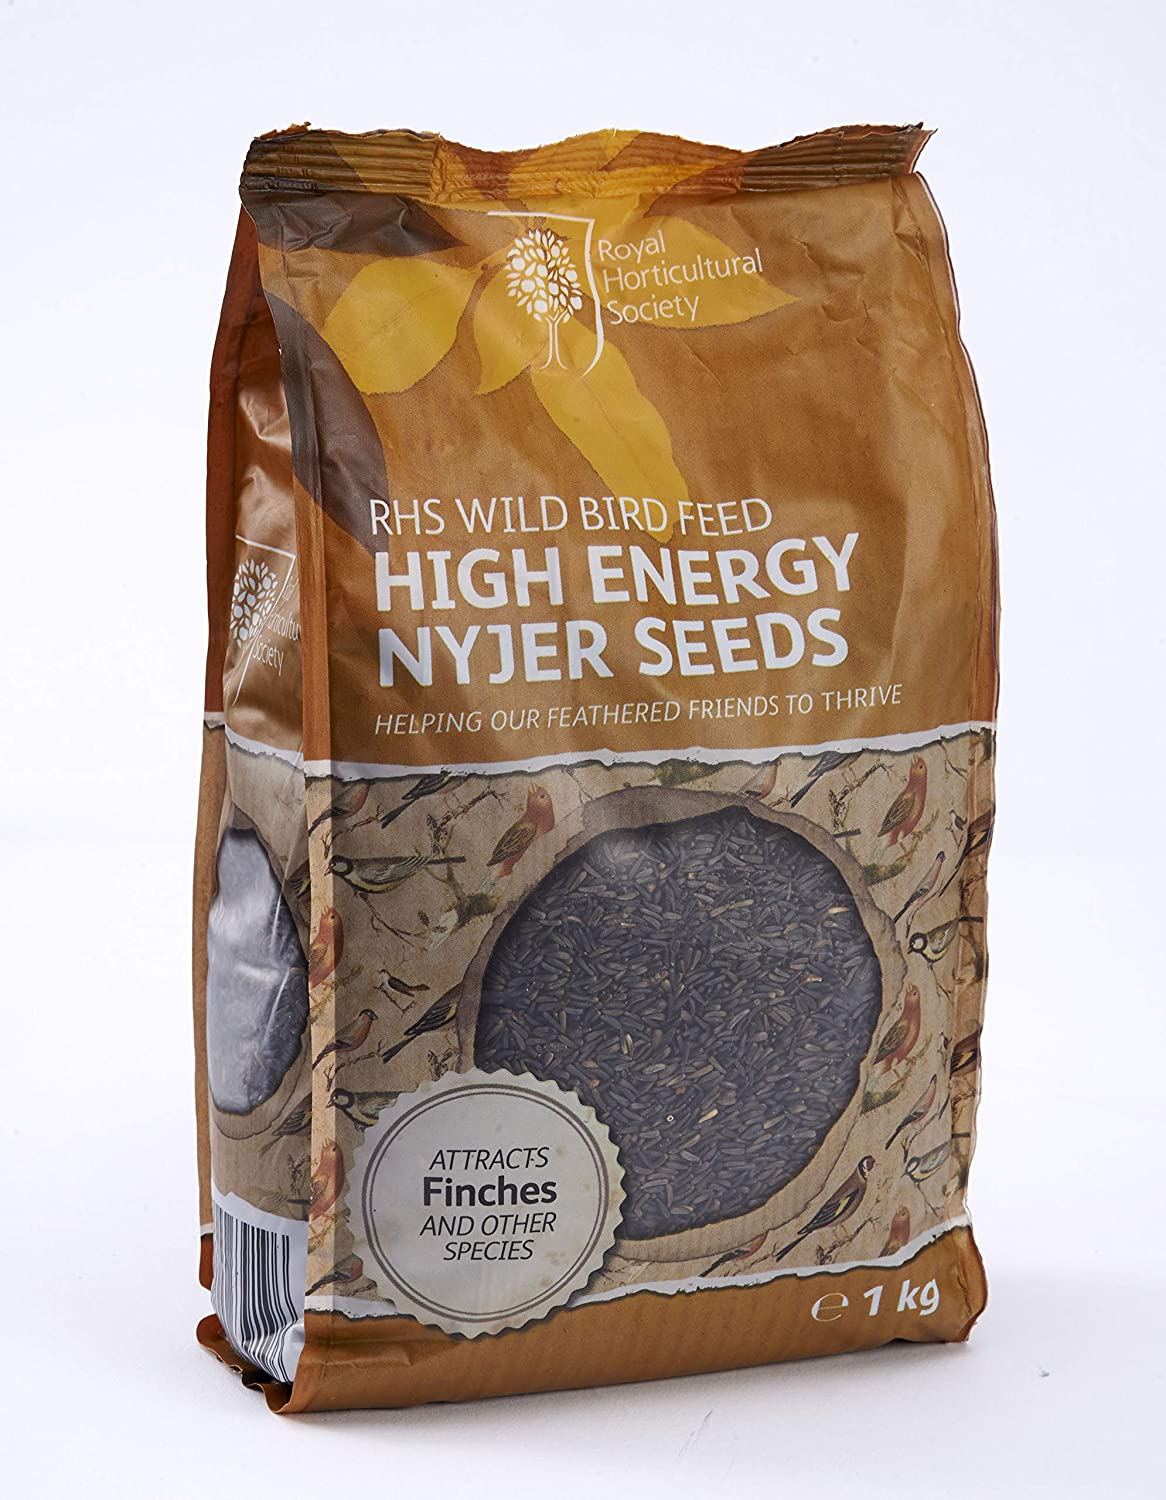 RHS Wild Bird Feed, High Energy Nyjer Seeds - 1KG, Agros Trading